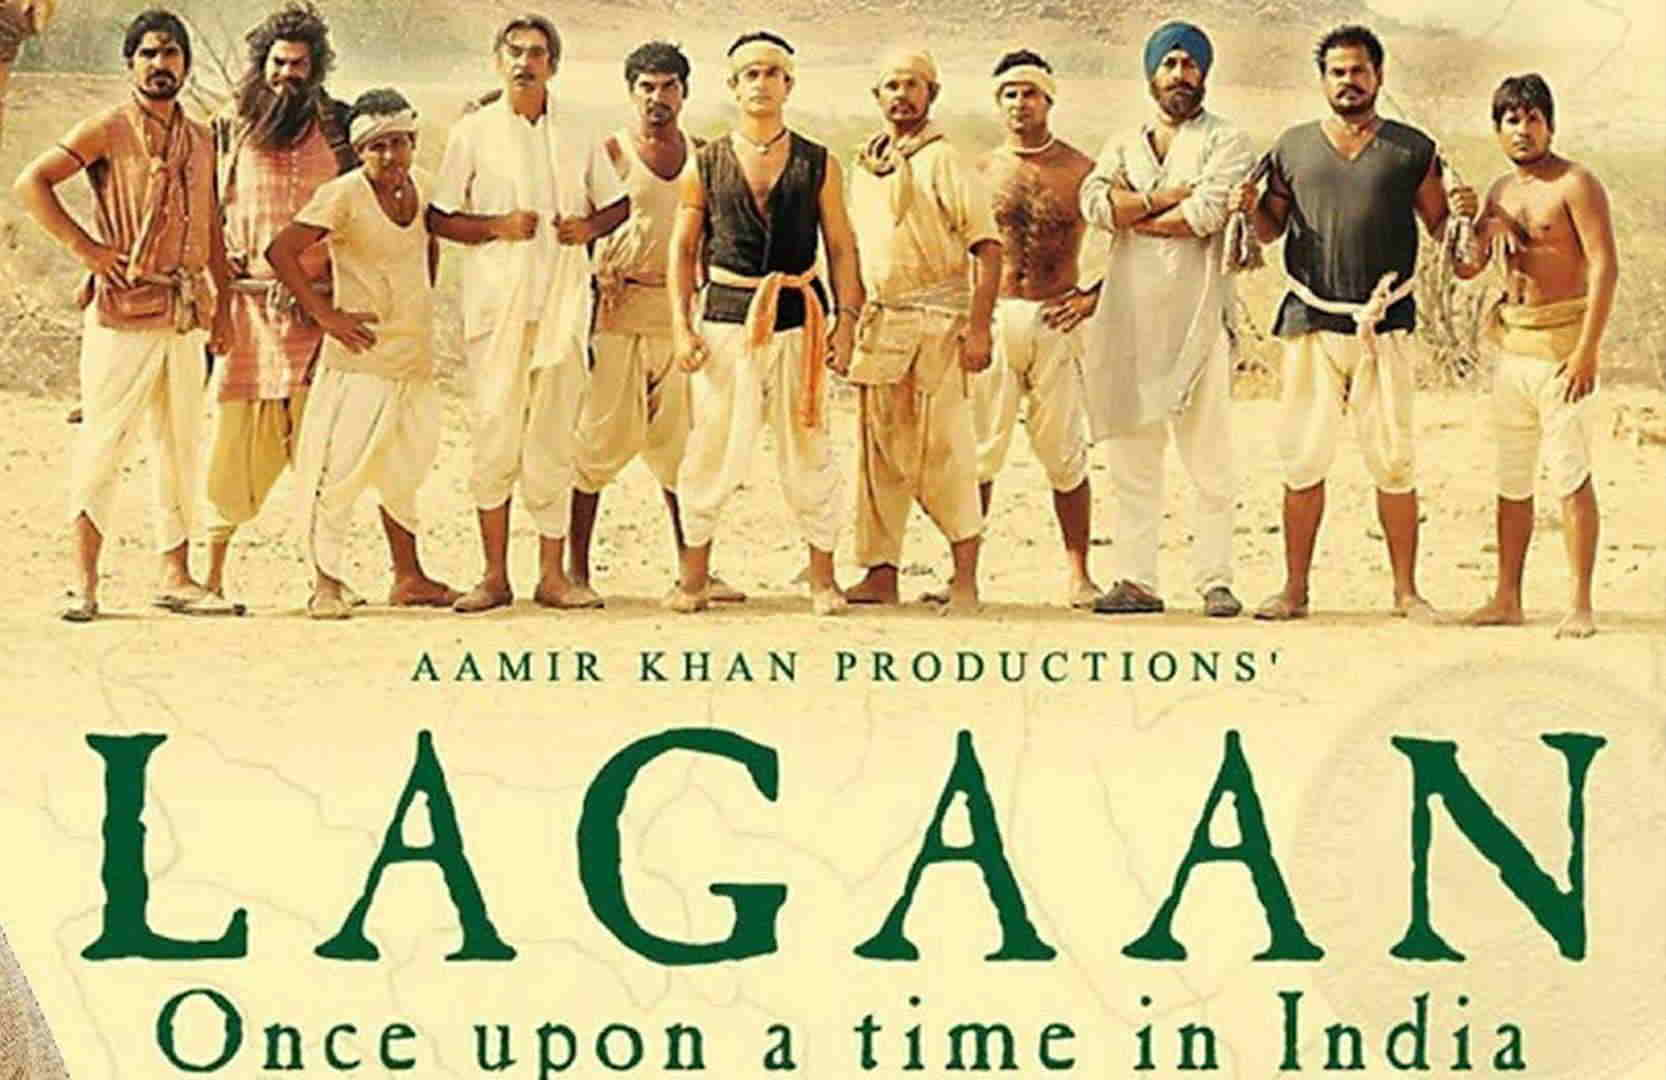 Lagaan-Once-Upon-a-Time-in-india-1558532344.jpg